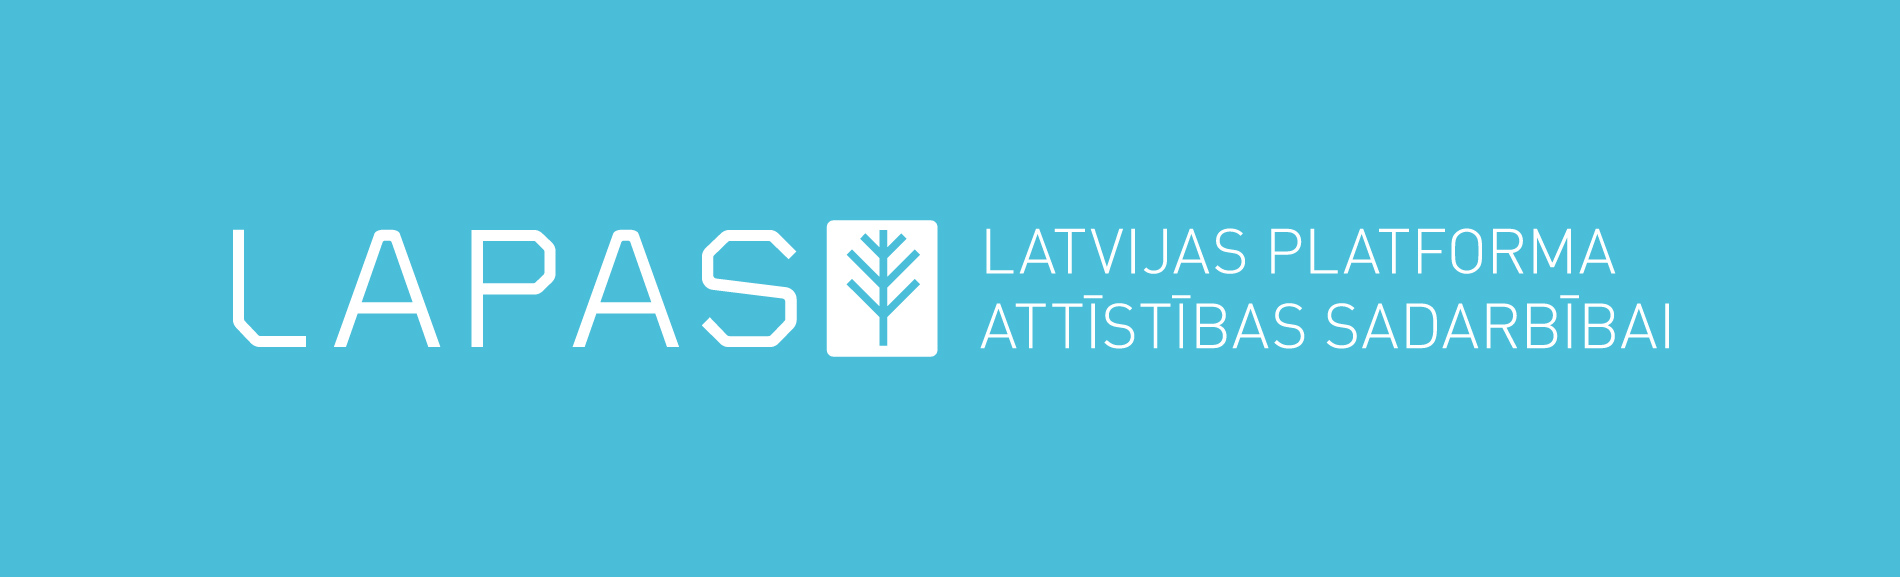 Latvian Platform for Development Cooperation logo